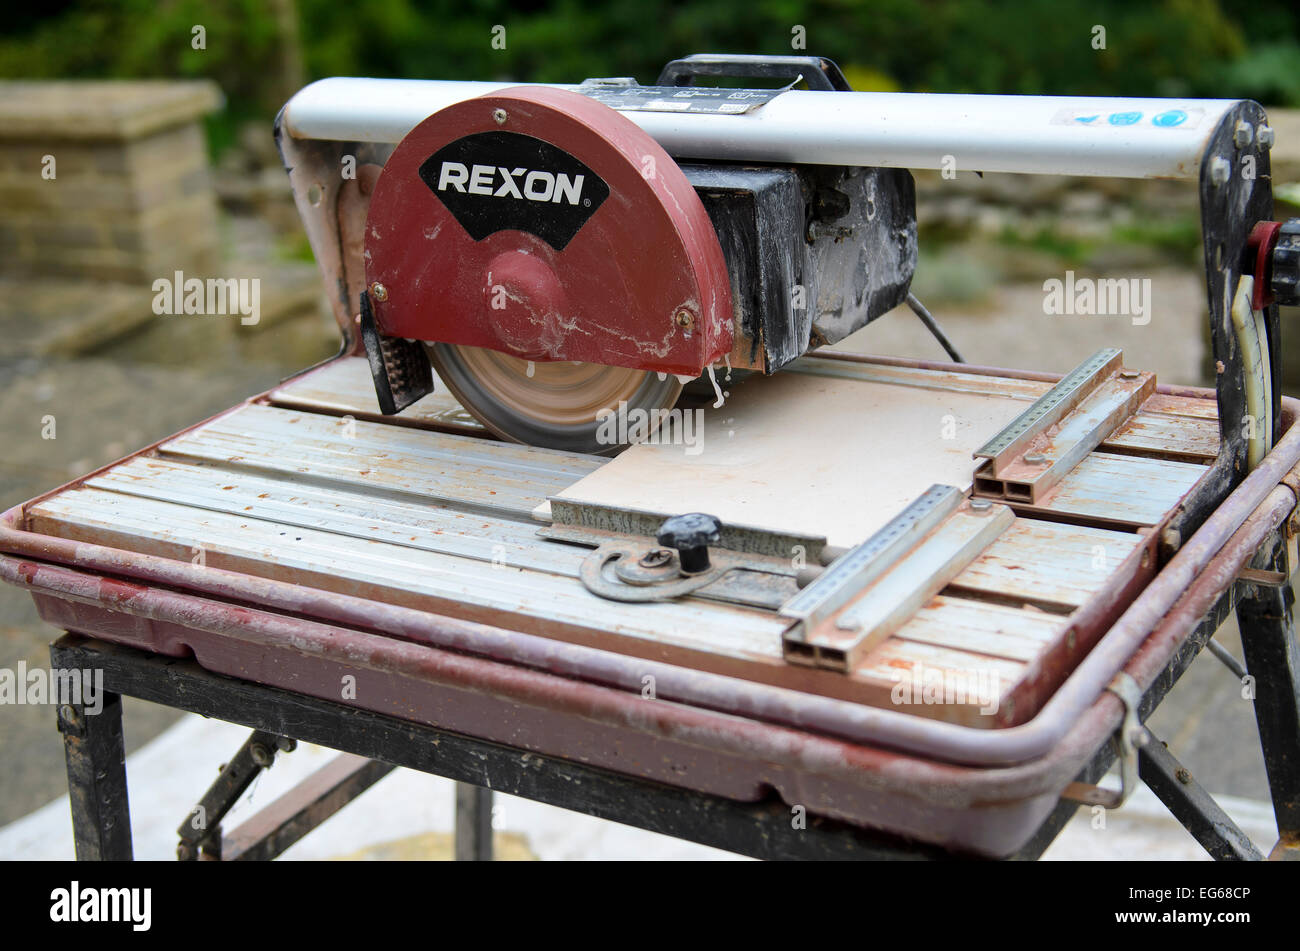 Electric tile cutter stock photos electric tile cutter stock water cooled ceramic tile cutting machine stock image dailygadgetfo Gallery